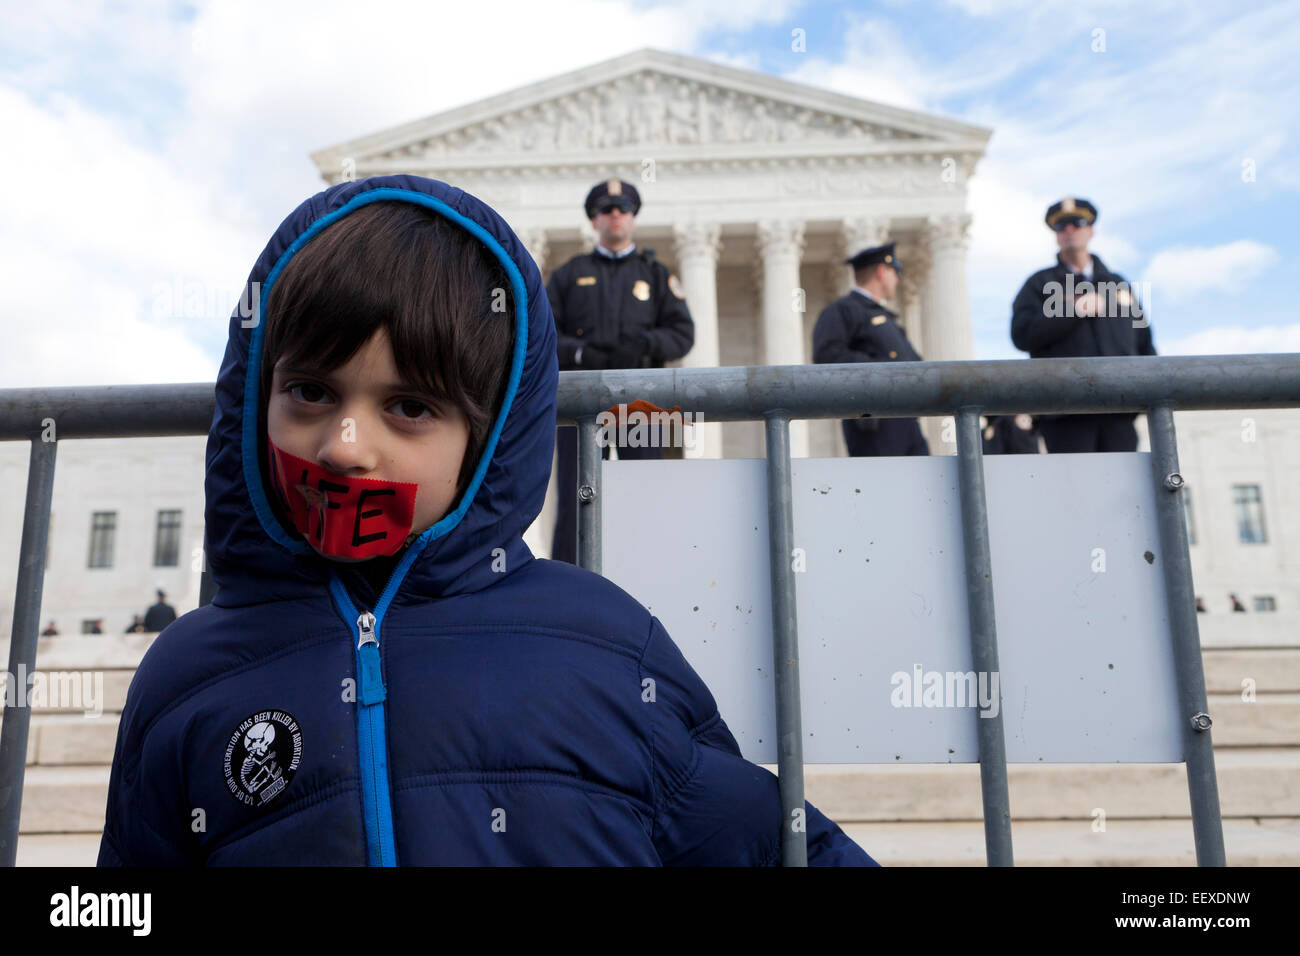 Washington DC, USA. 22nd Jan, 2015. Pro-Life supporters march carrying signs toward the Supreme Court building. - Stock Image